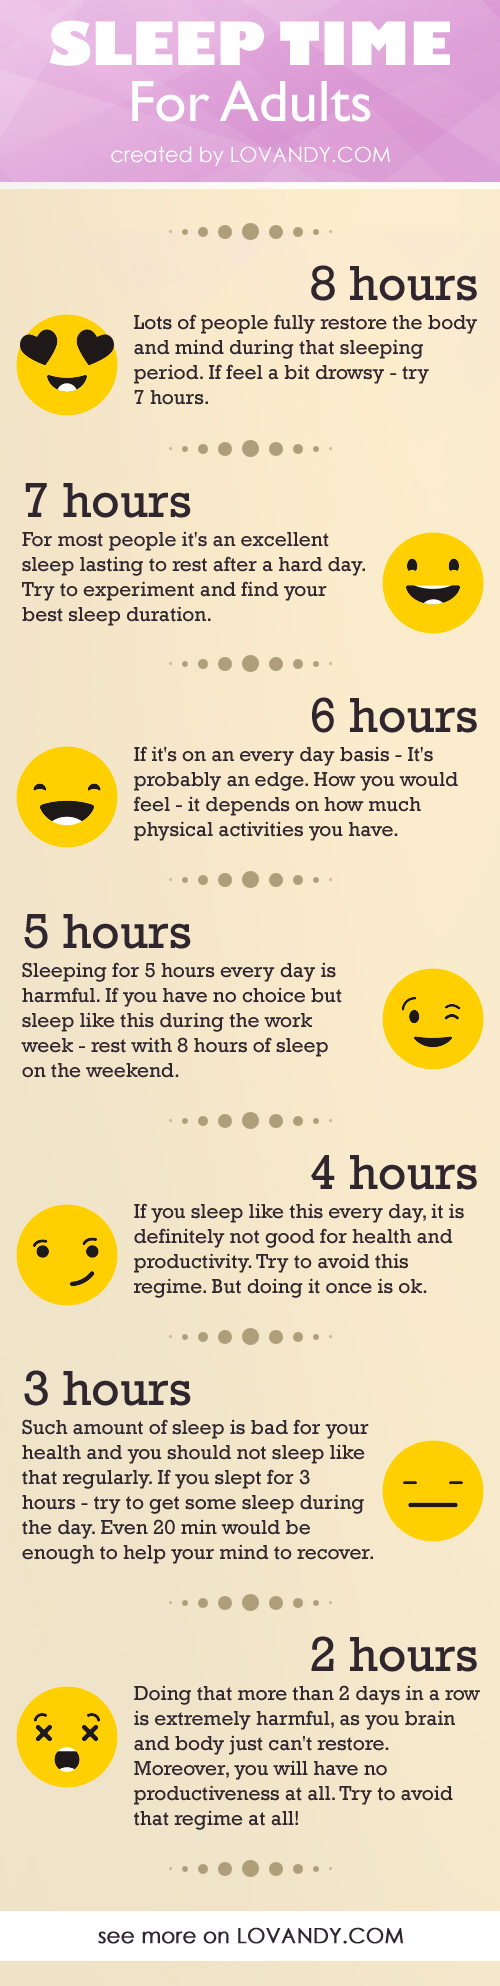 most common sleep time